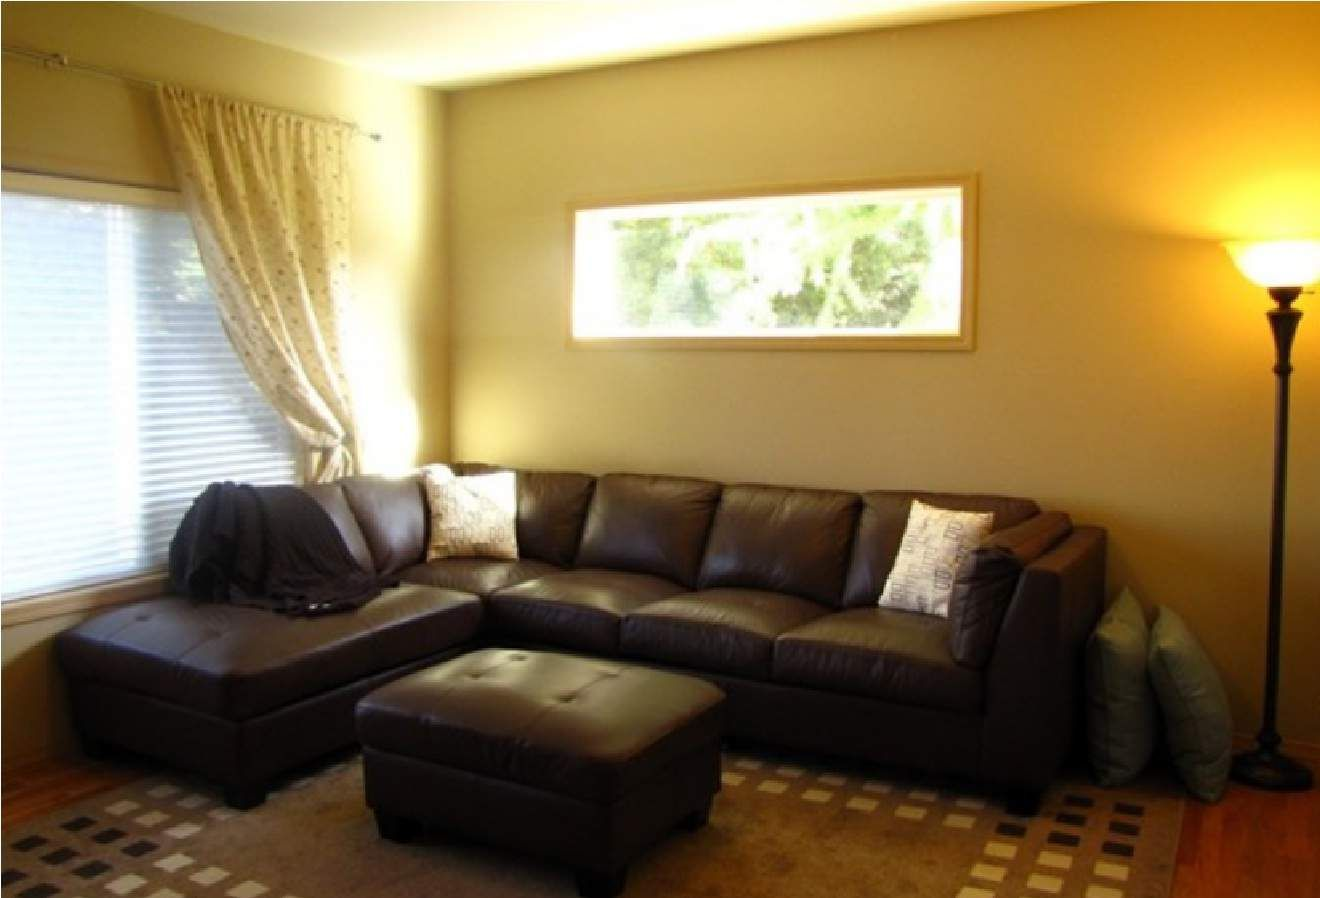 yellow living room walls | Large Living Room With Black Leather Sofa ...